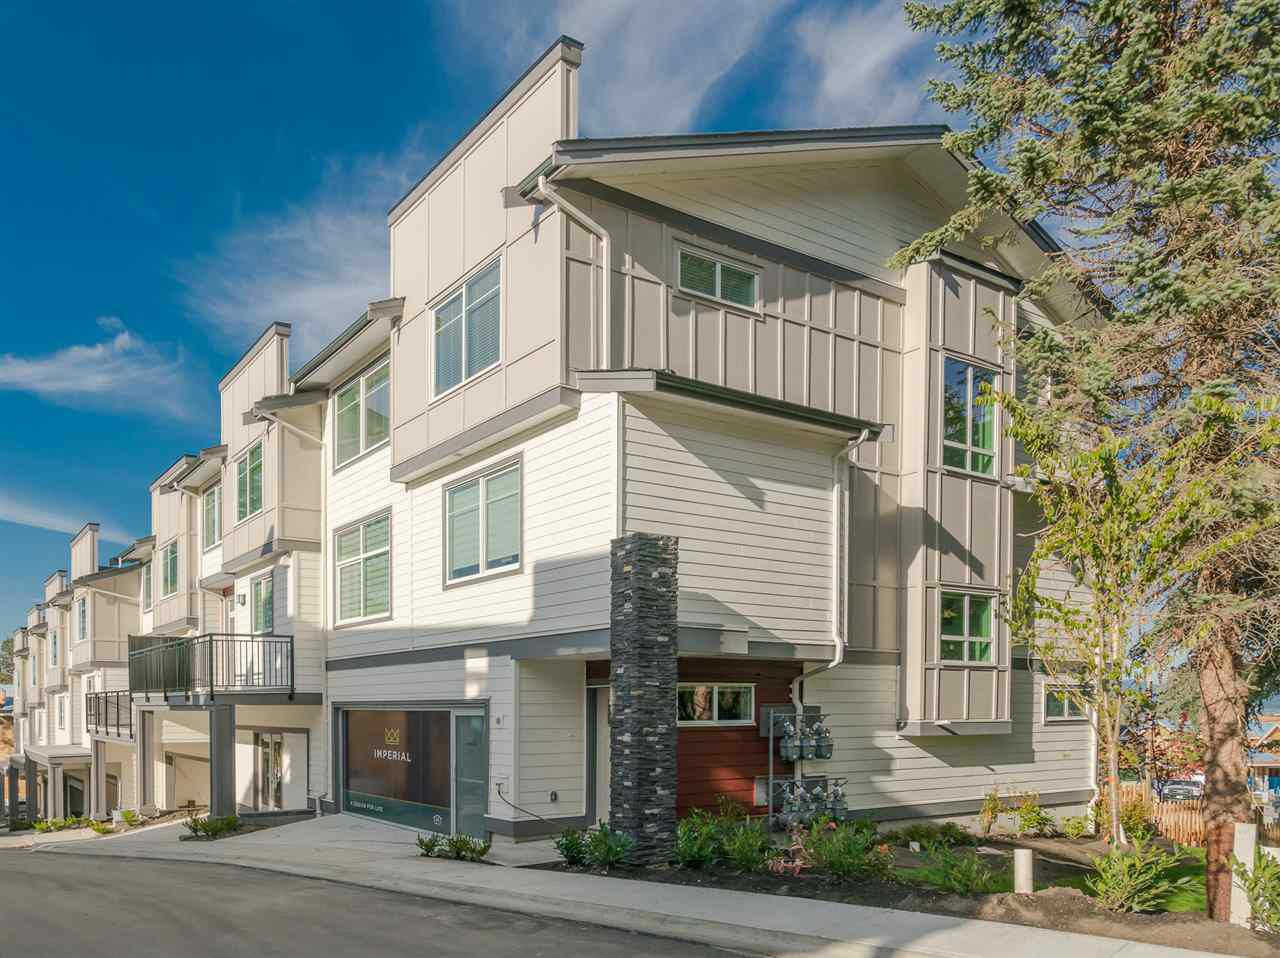 """Main Photo: 19 15633 MOUNTAIN VIEW Drive in Surrey: Grandview Surrey Townhouse for sale in """"Imperial"""" (South Surrey White Rock)  : MLS®# R2221267"""